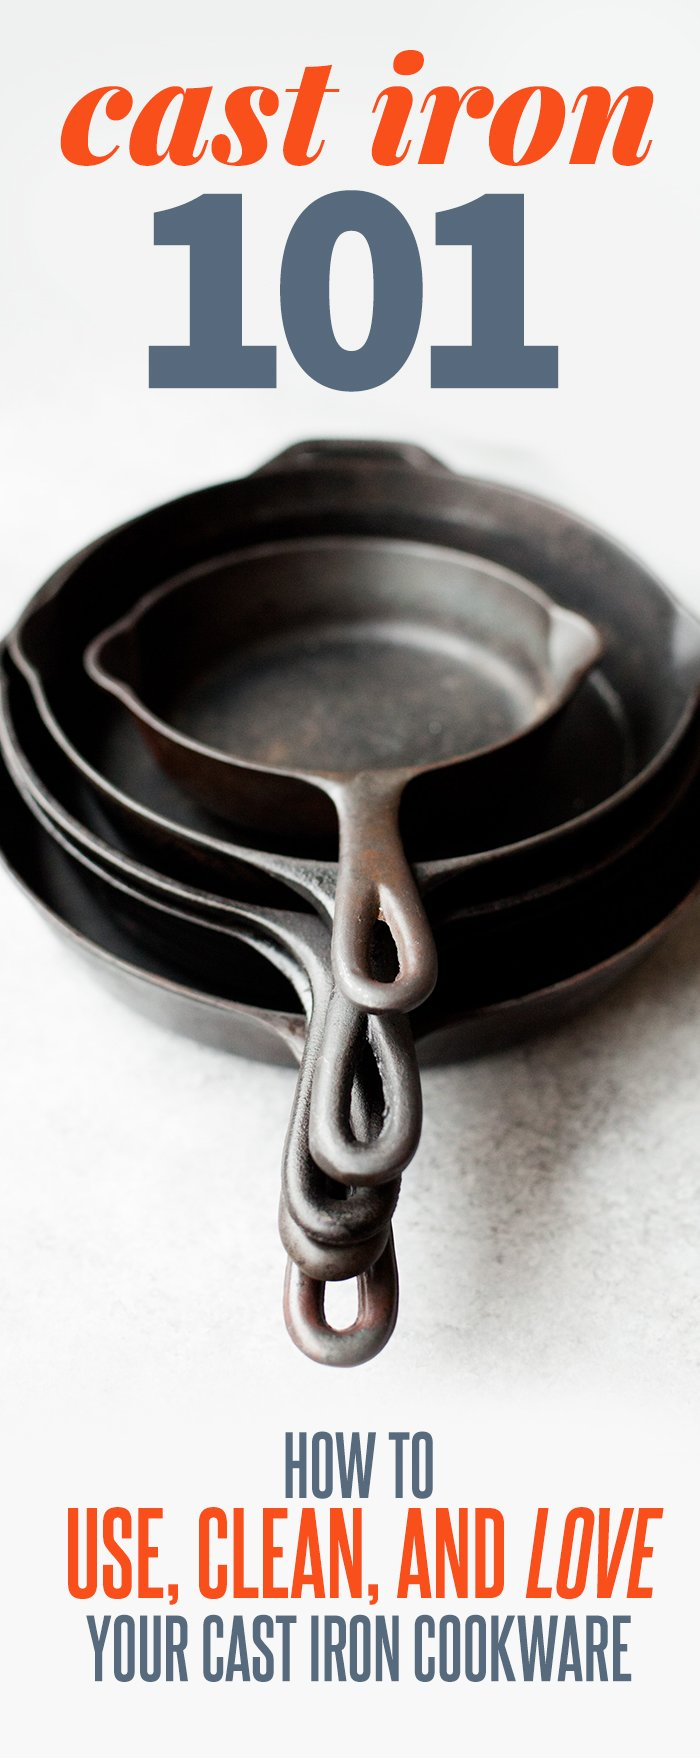 How to Use, Clean, and Love Cast Iron Cookware